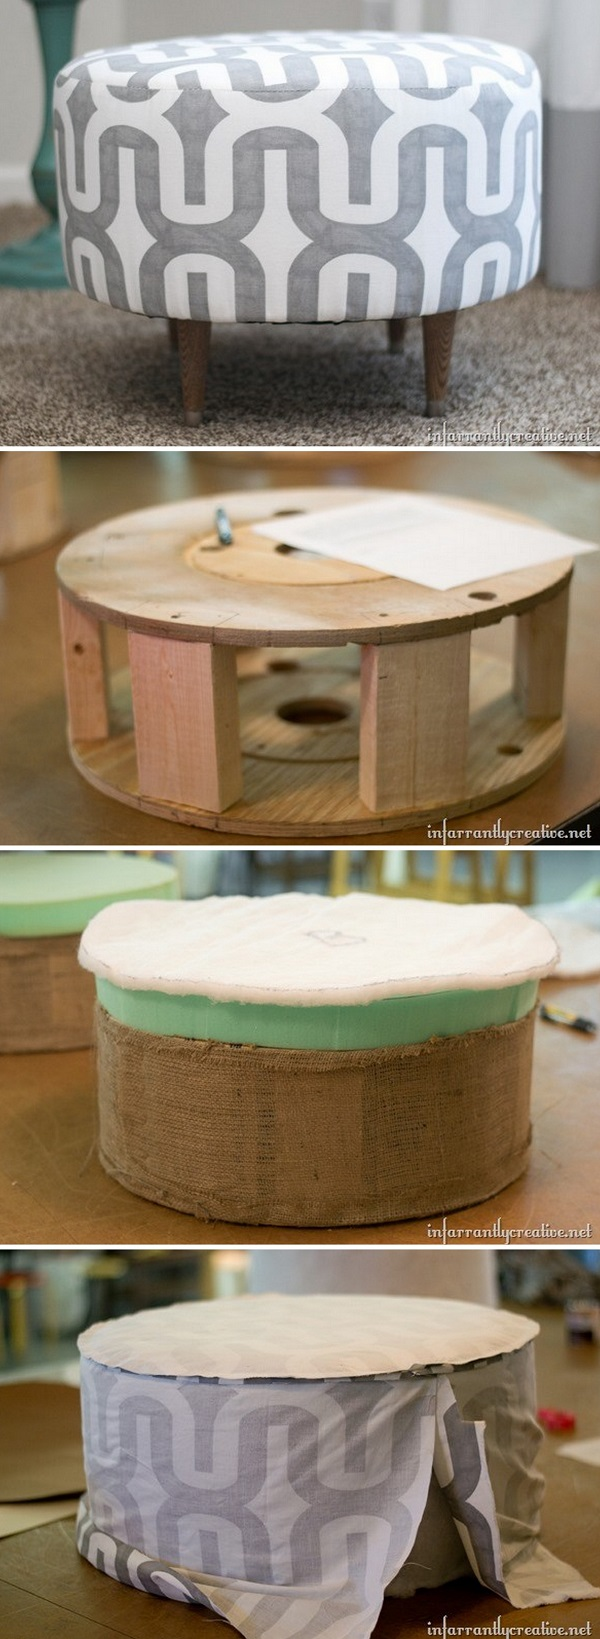 Check out this easy idea on how to make a #DIY electric spool ottoman #homedecor #budget #project